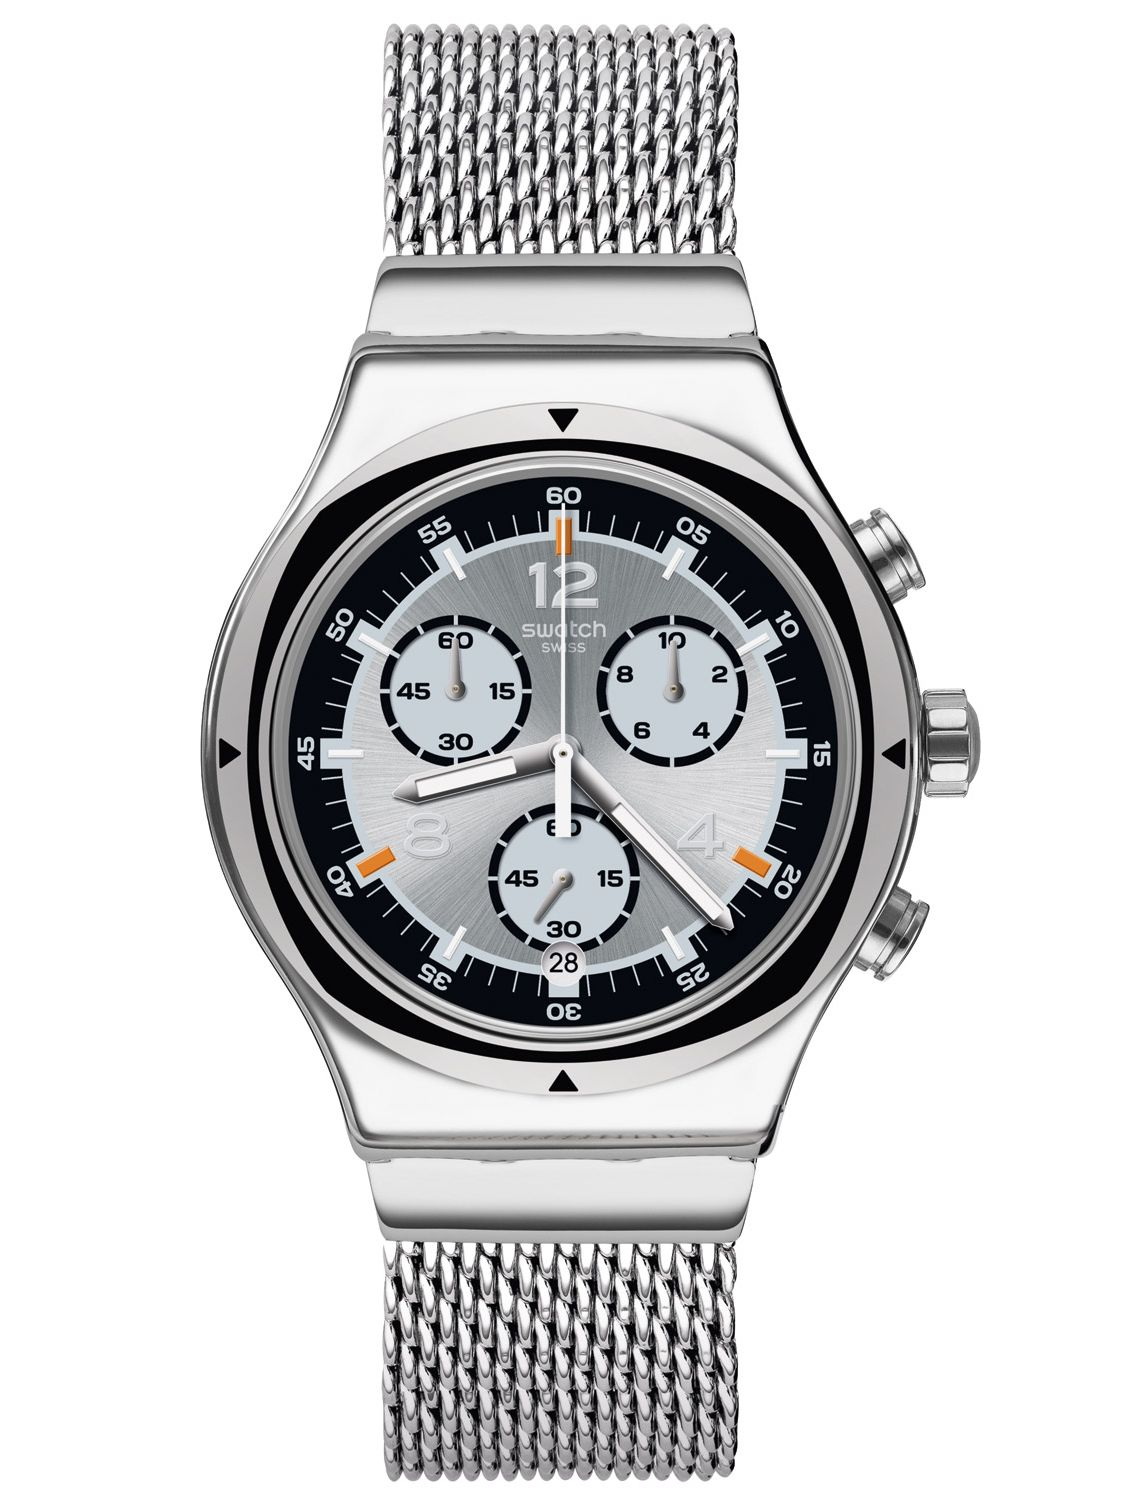 SWATCH Men s Watch Chronograph TV Time 20.5 cm YVS453MB c63870834a3